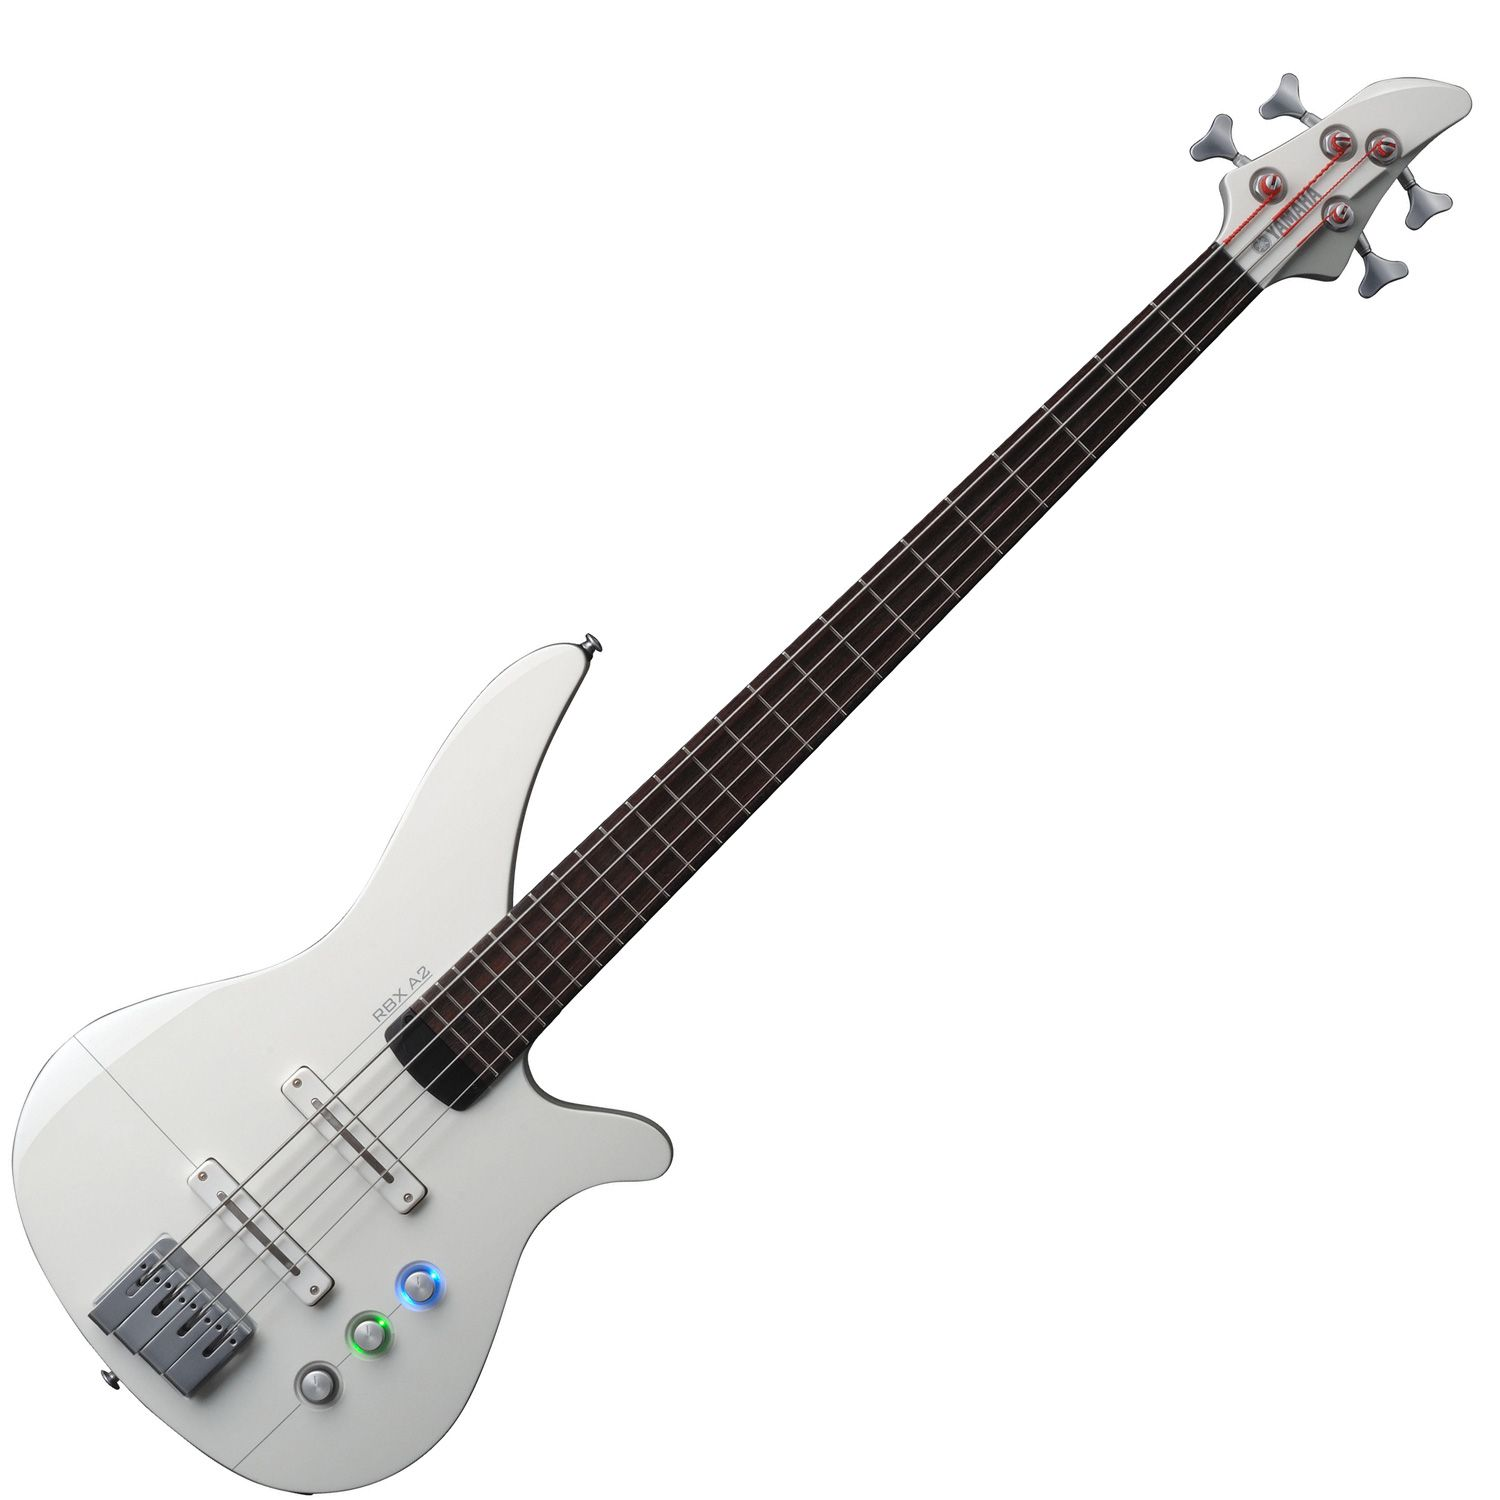 Rbx4 A2 Rbx Series Basses Guitars Basses Musical Instruments Products Yamaha United States Bass Guitar Yamaha Bass Guitar